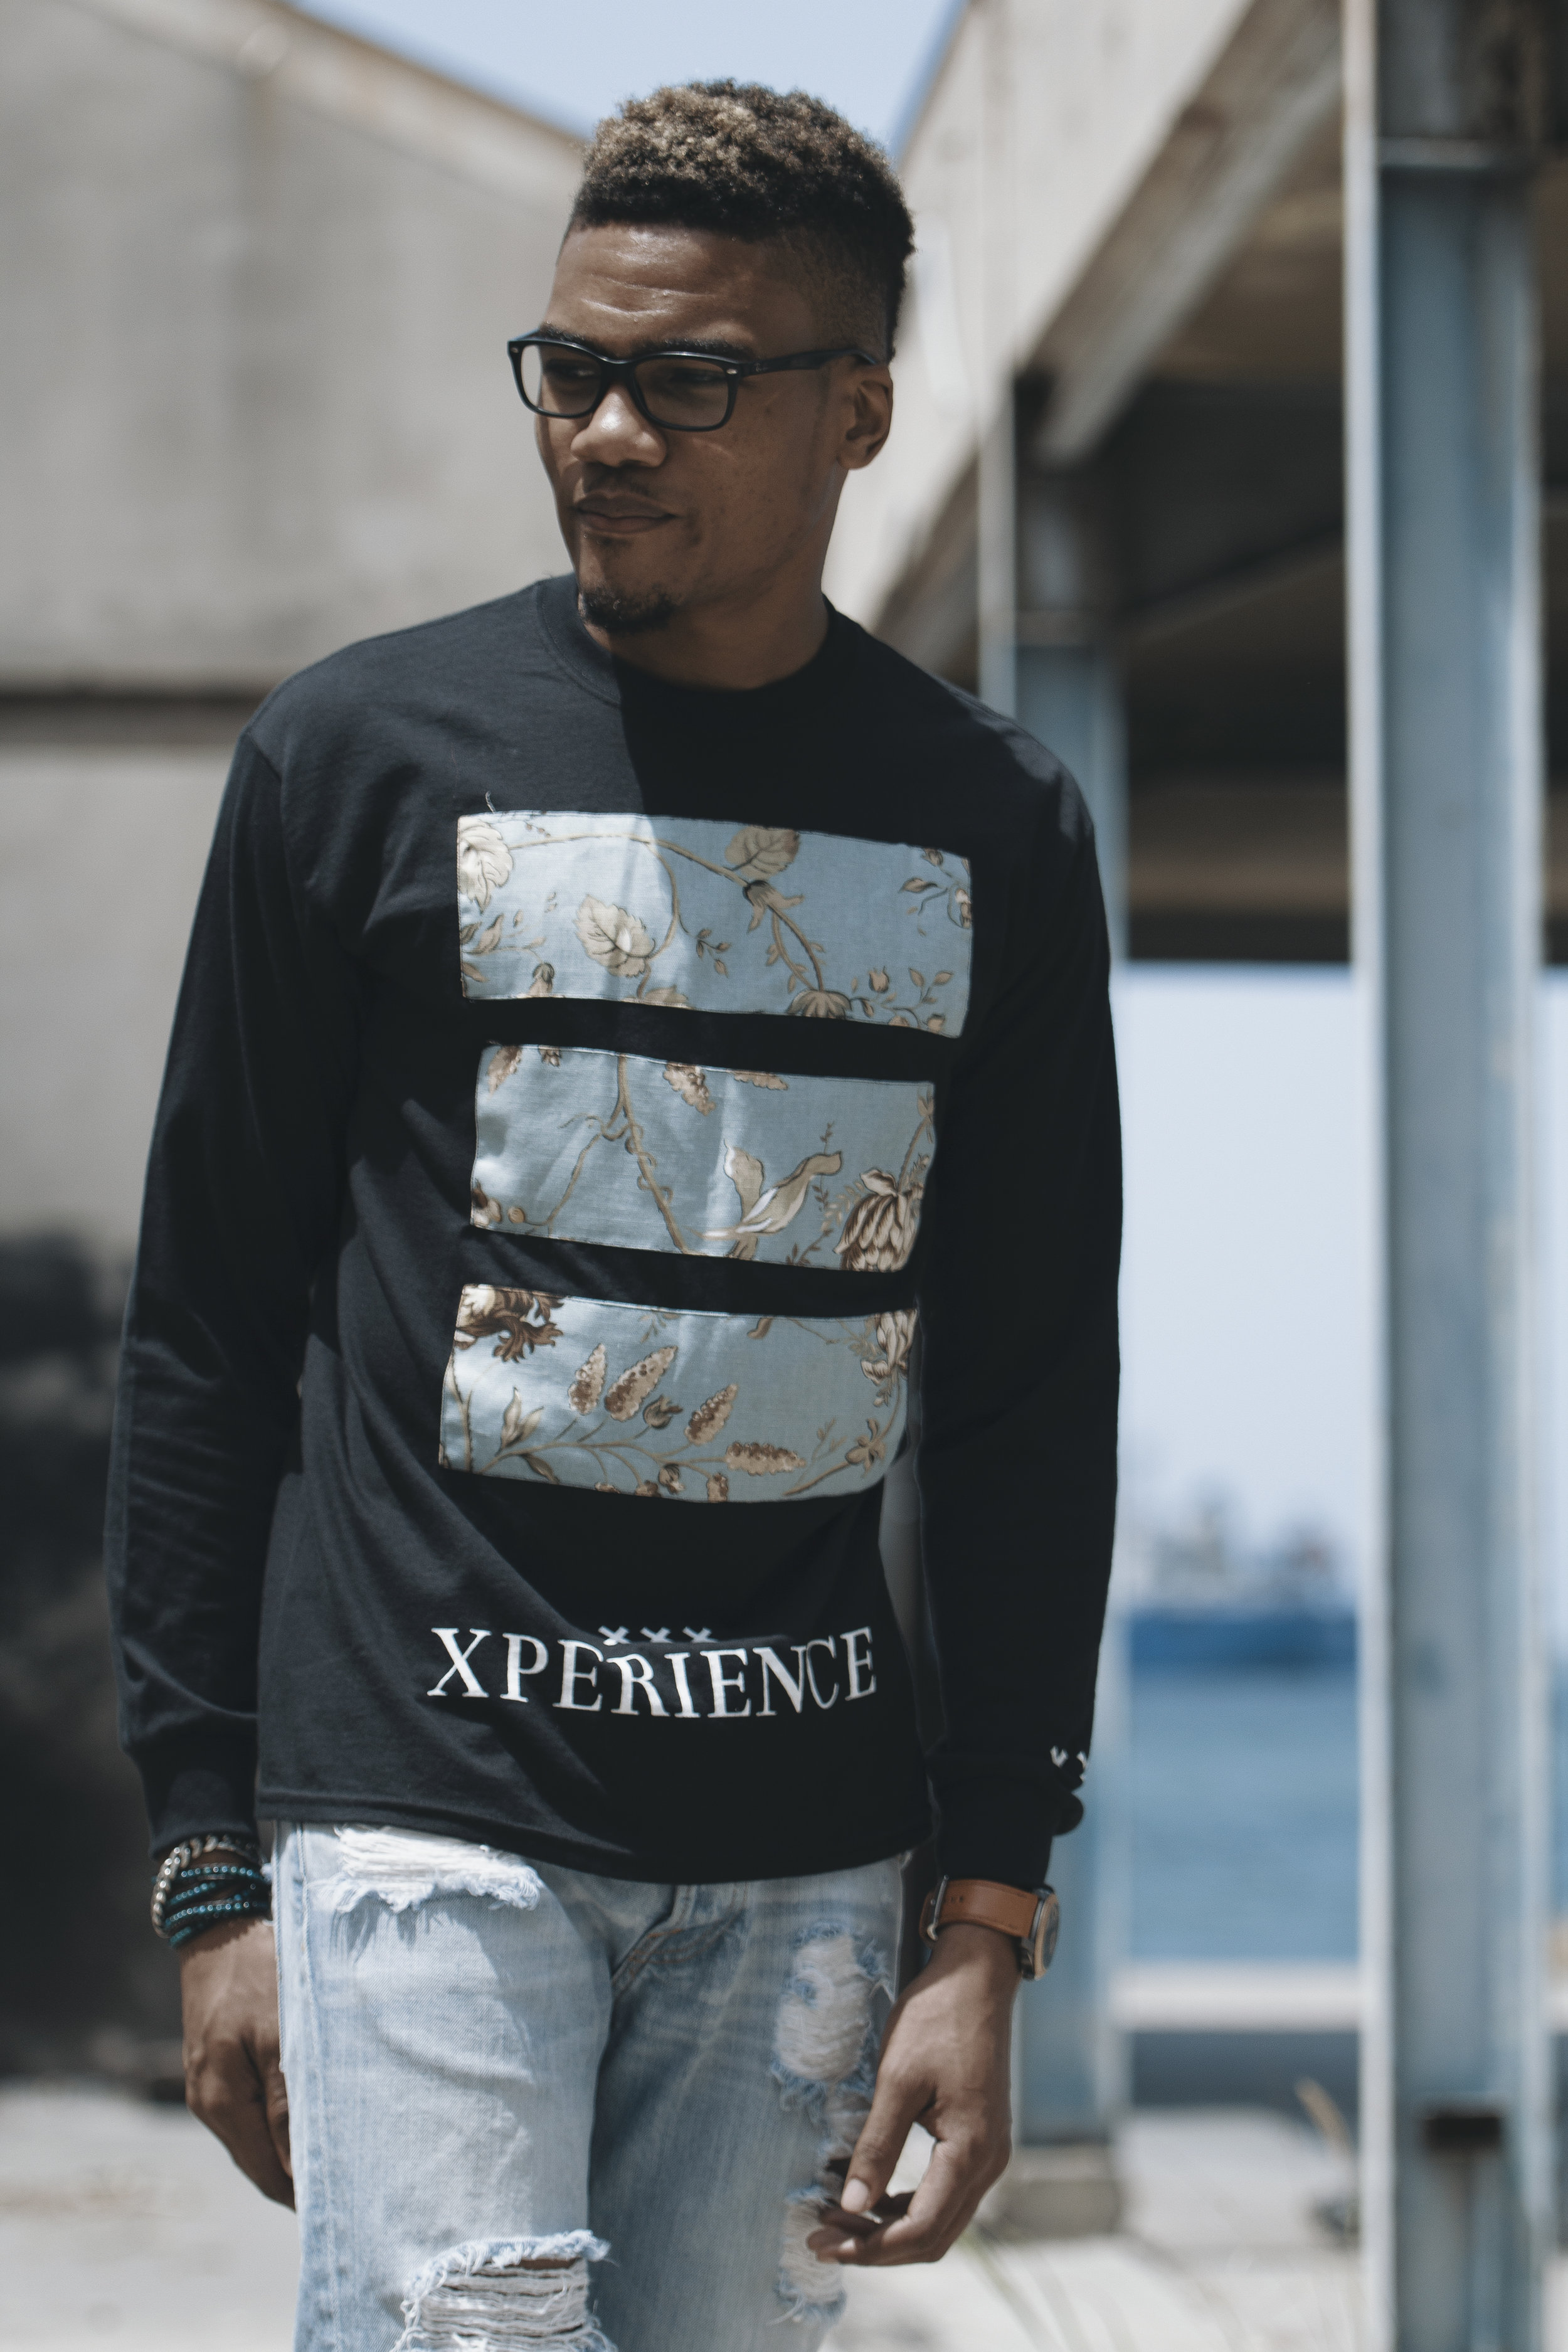 Xperience Clothing